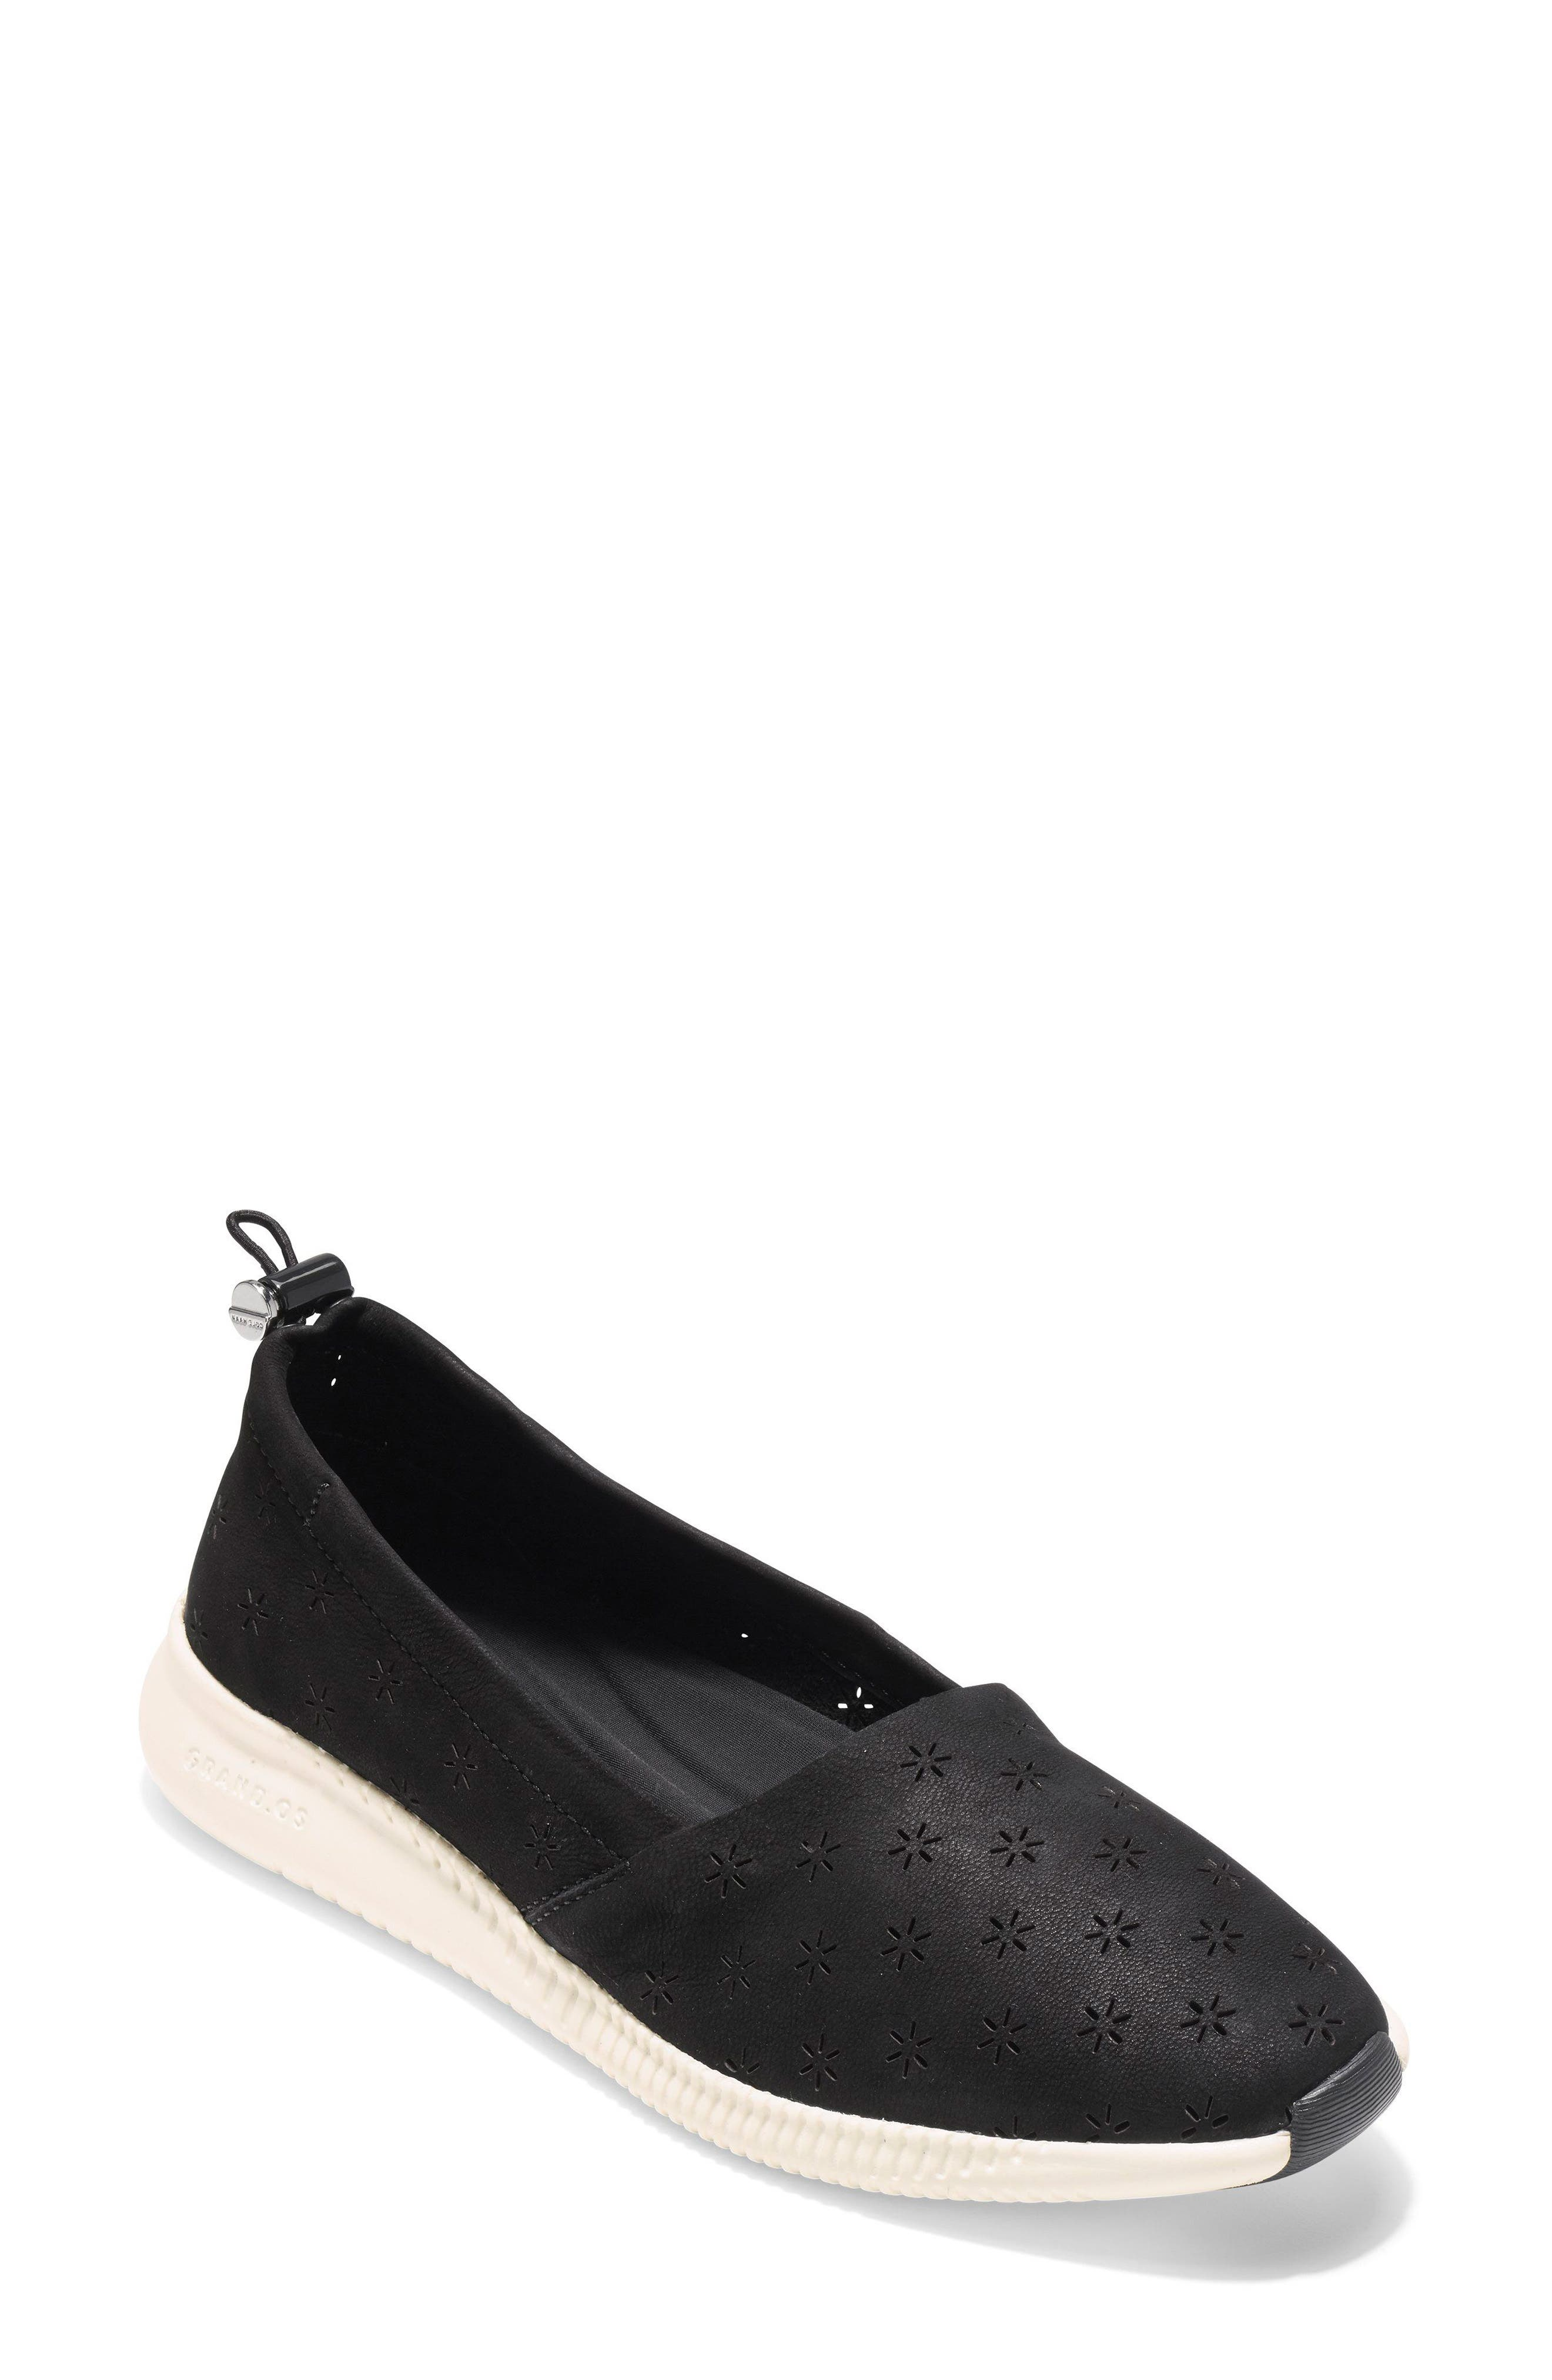 Studiogrand Perforated Slip-on,                         Main,                         color, 001